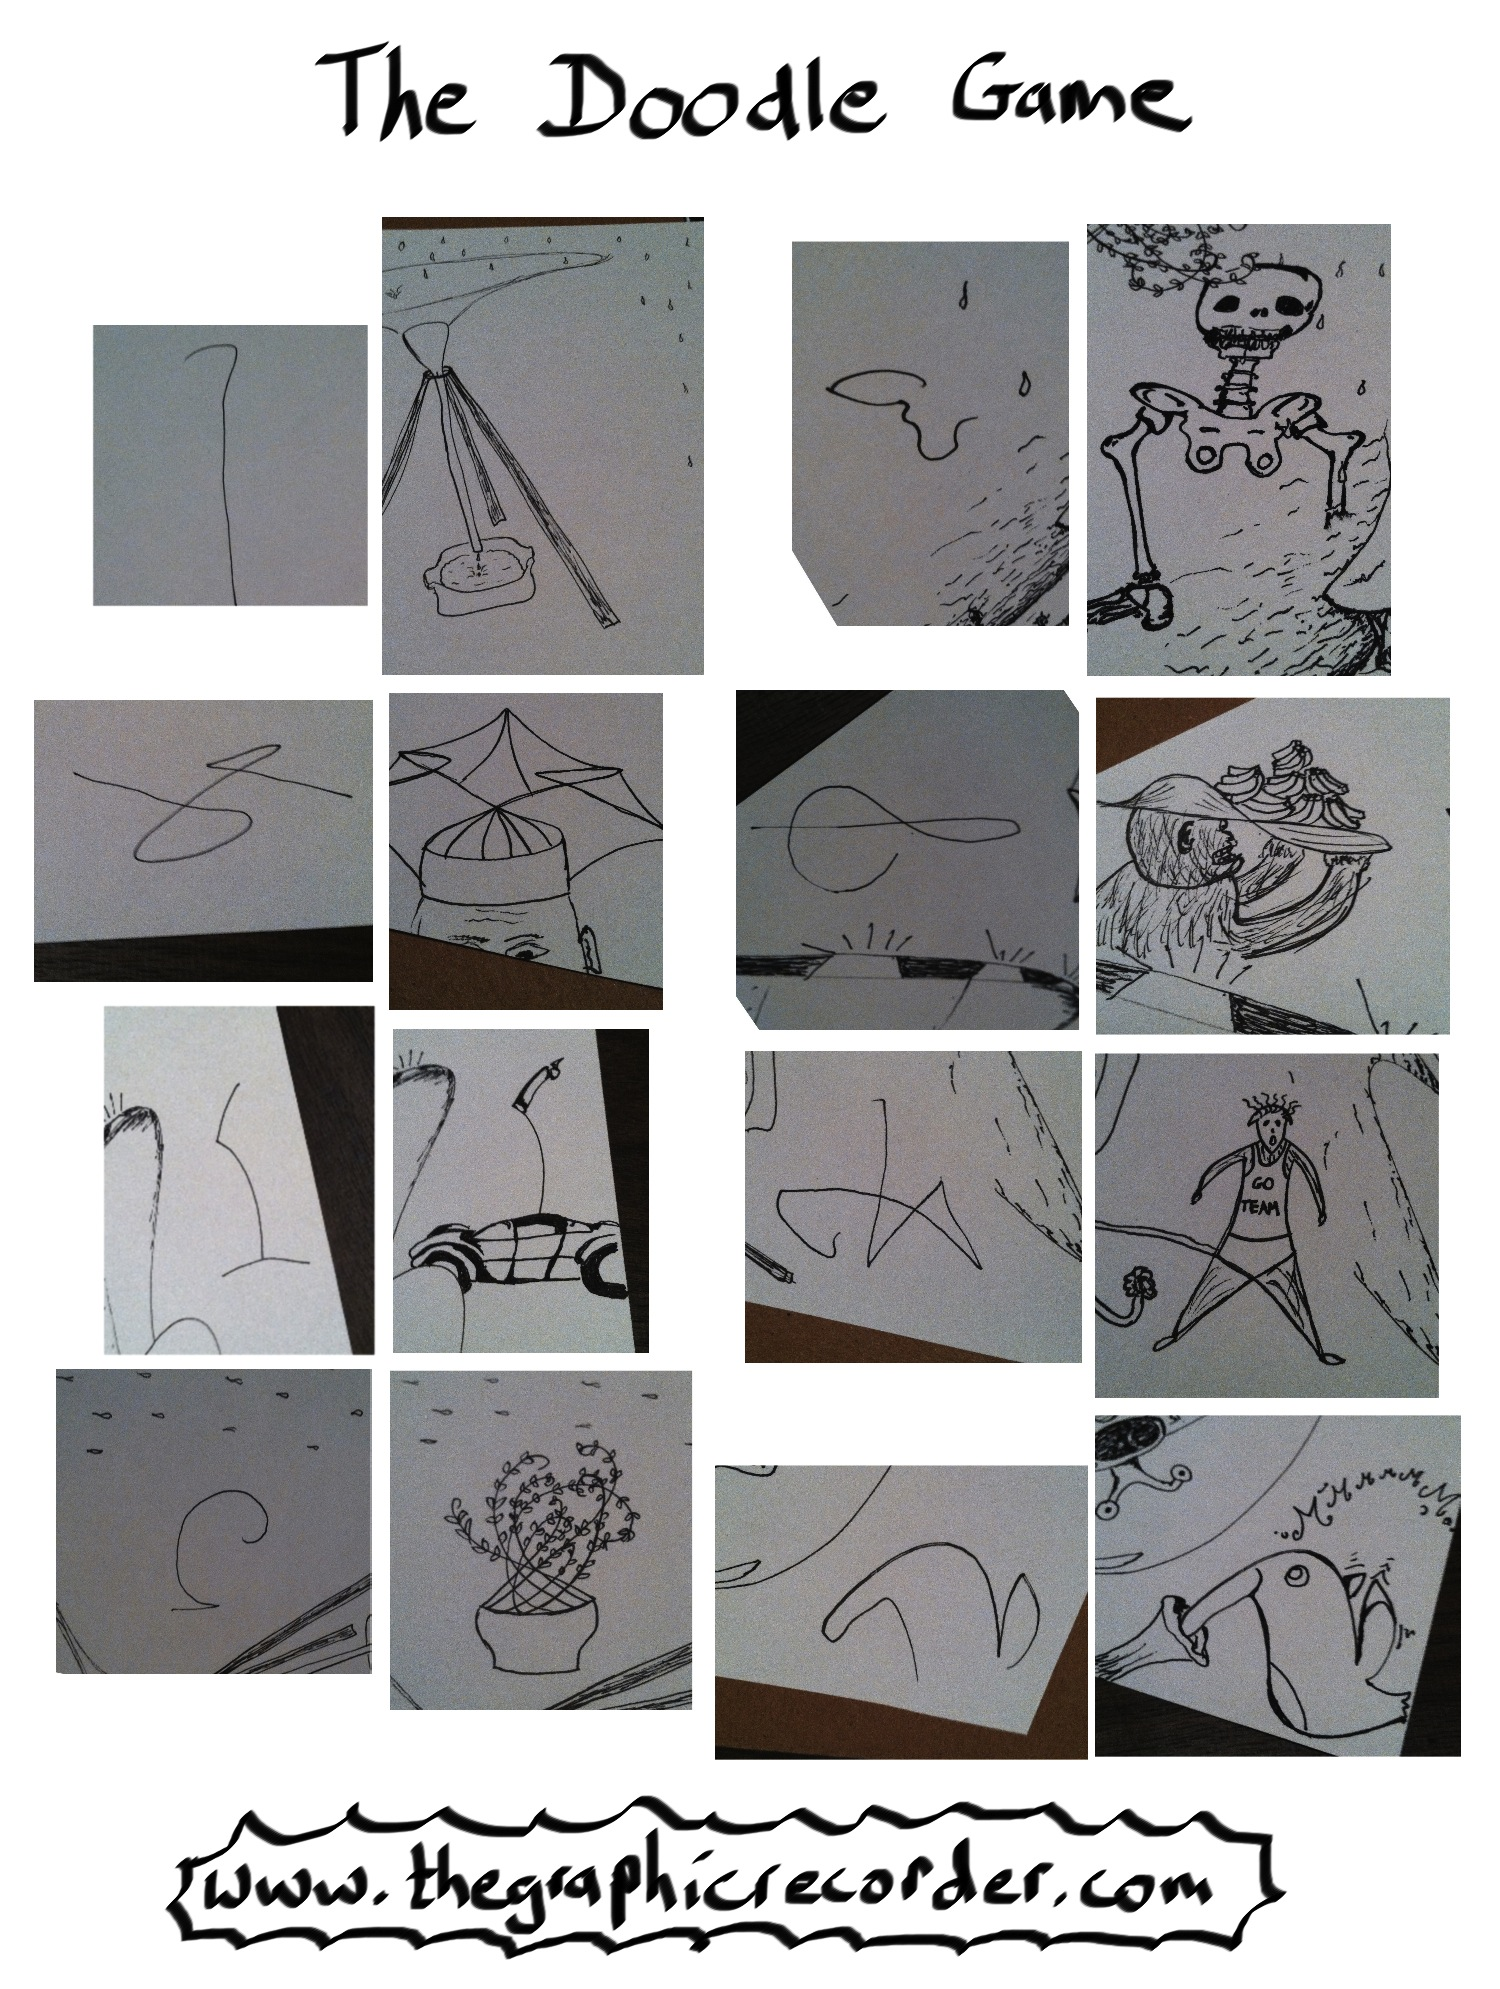 Here are a few before and after pictures from one round of the doodle game